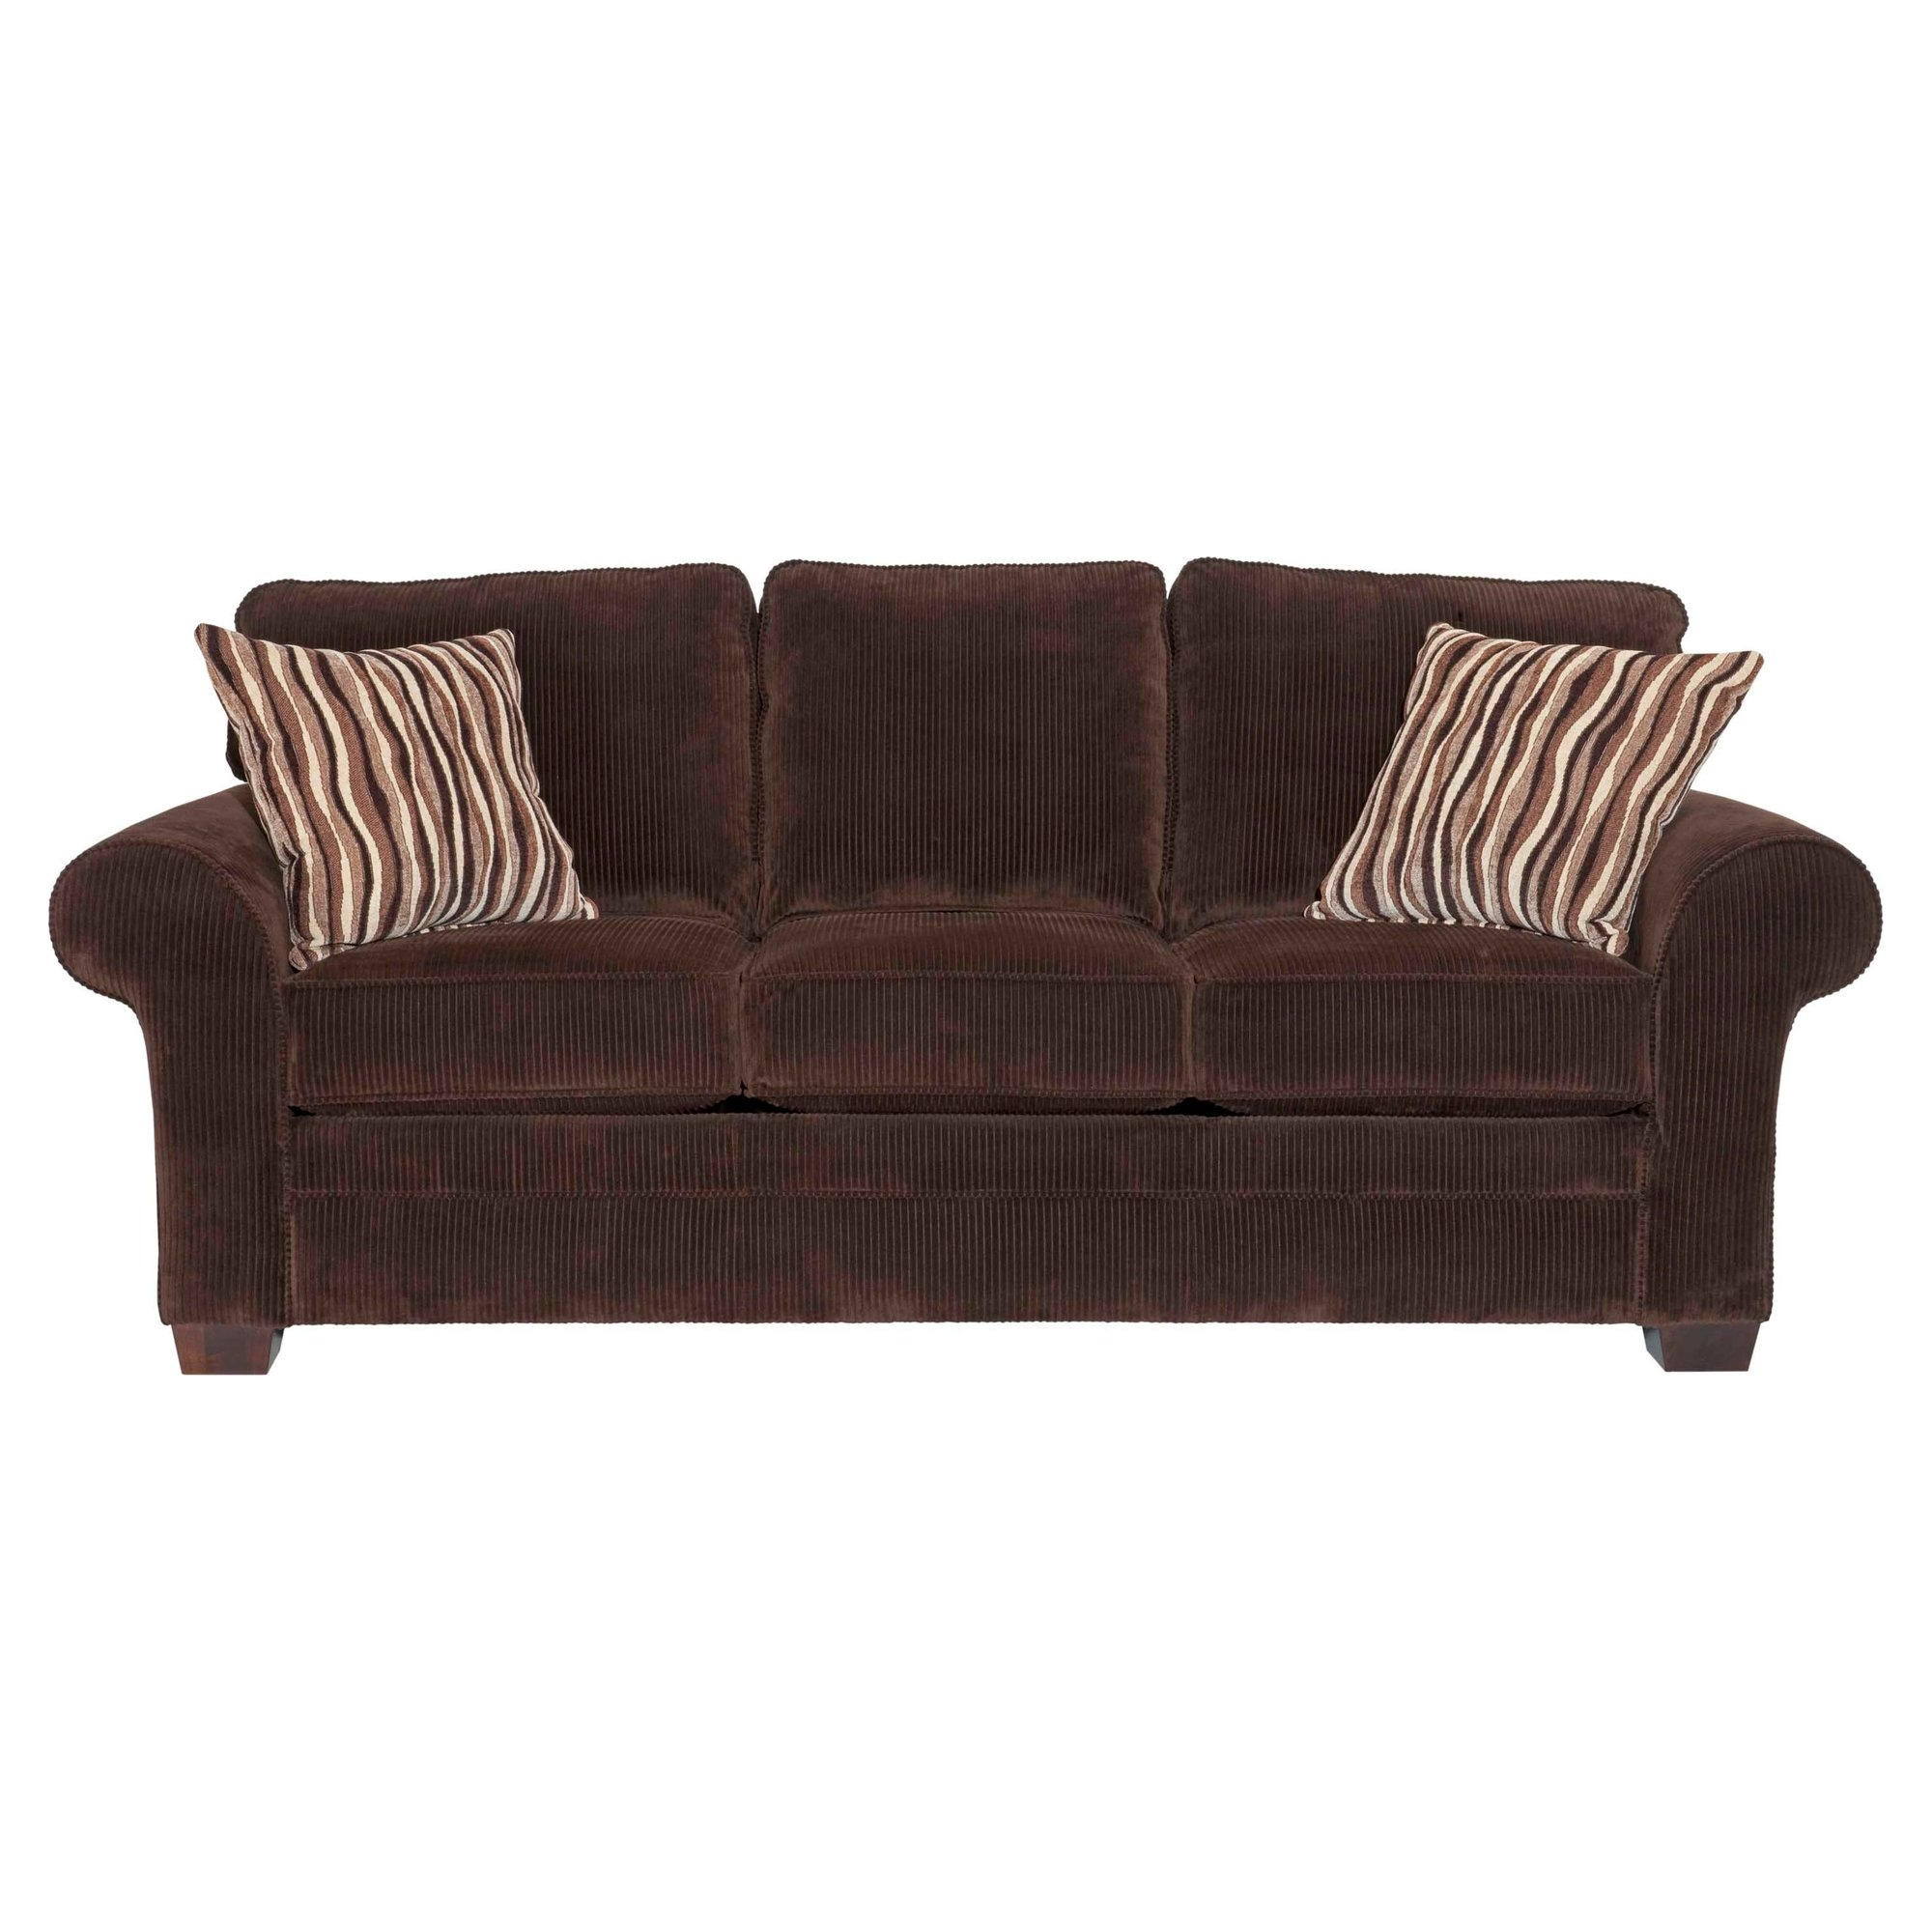 Broyhill Zachary Sofa Reviews Wayfair Throughout Broyhill Sectional Sofas (Image 10 of 15)